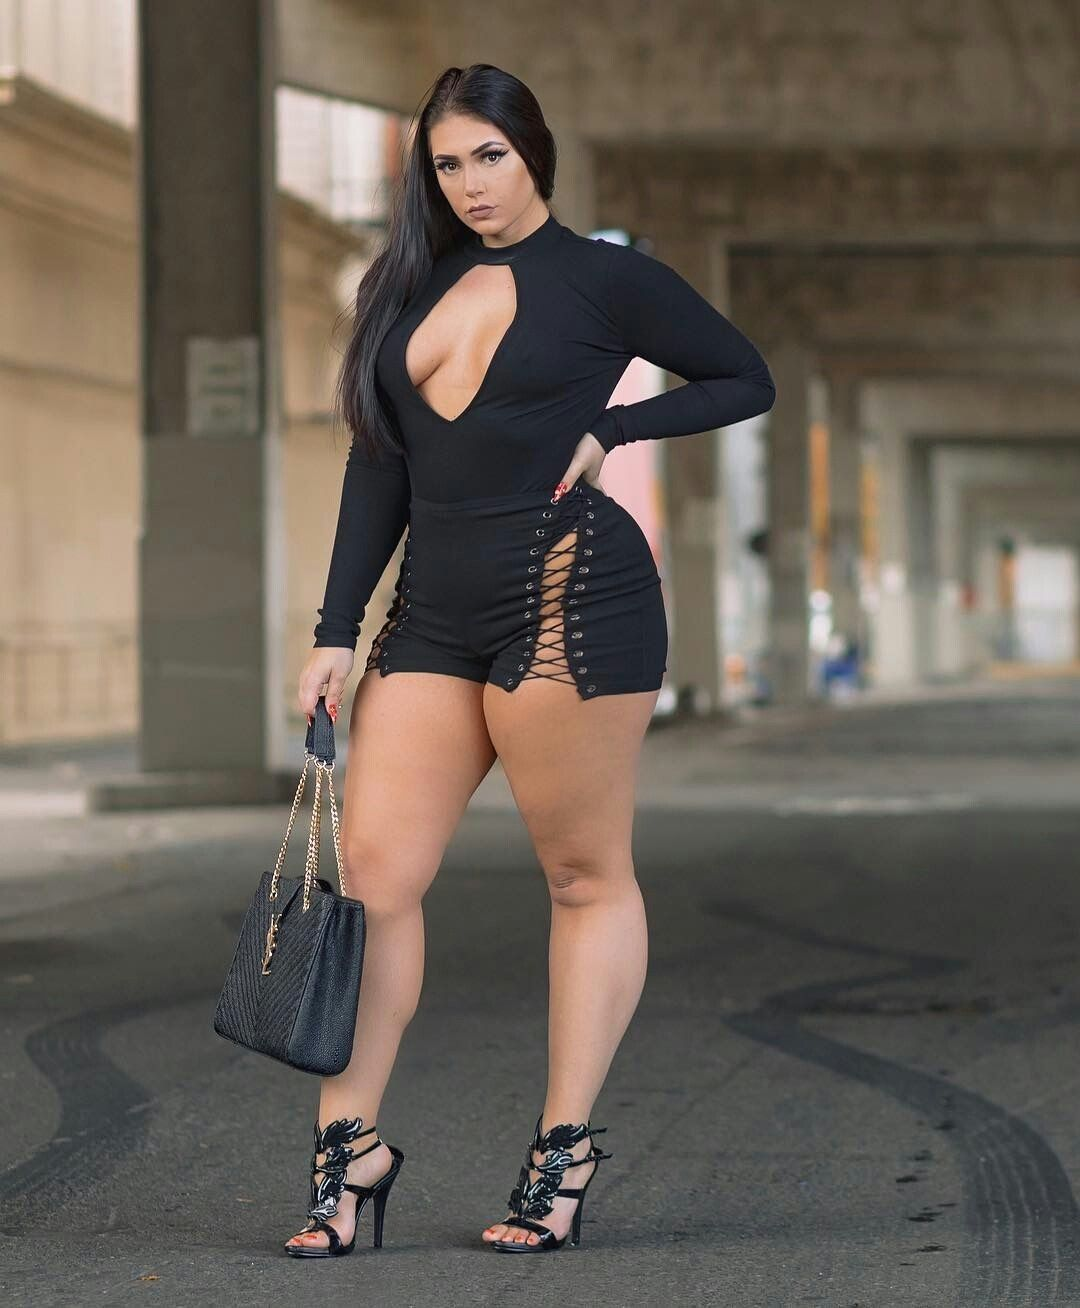 Pin on Curvy women fashion